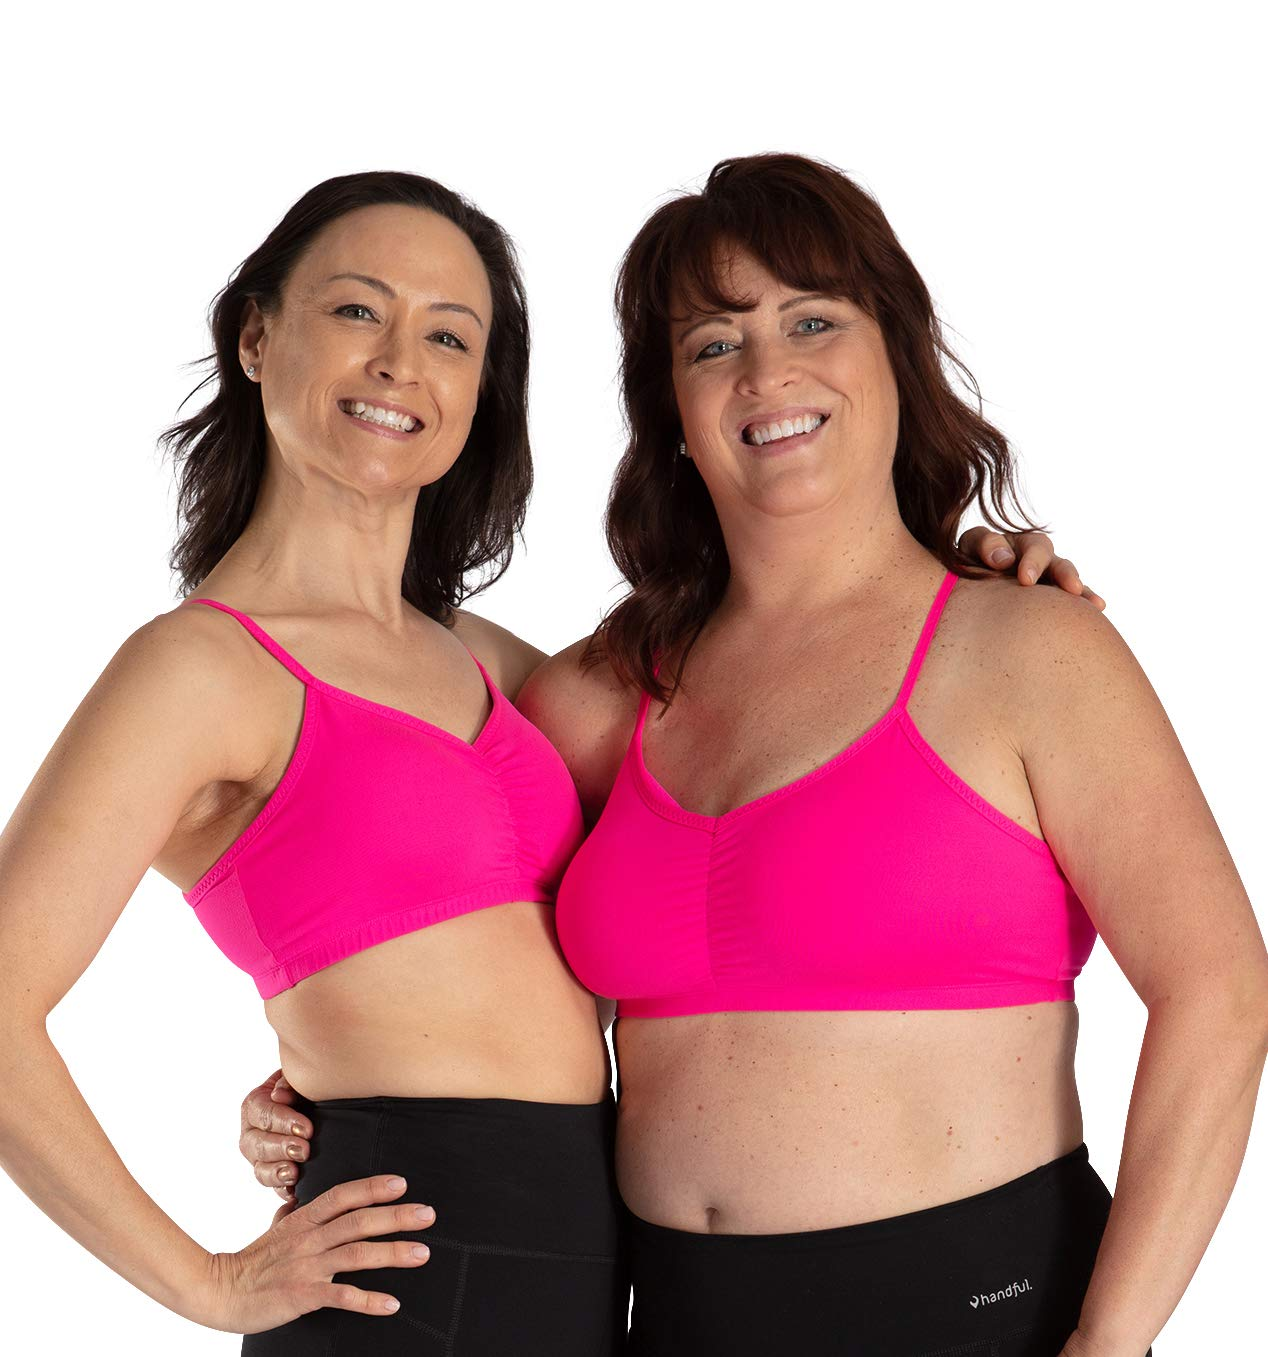 Handful Women's Adjustable Sports Bra with Removable Pads, Seamless Workout Bras, Battle Cry Pink, X-Small